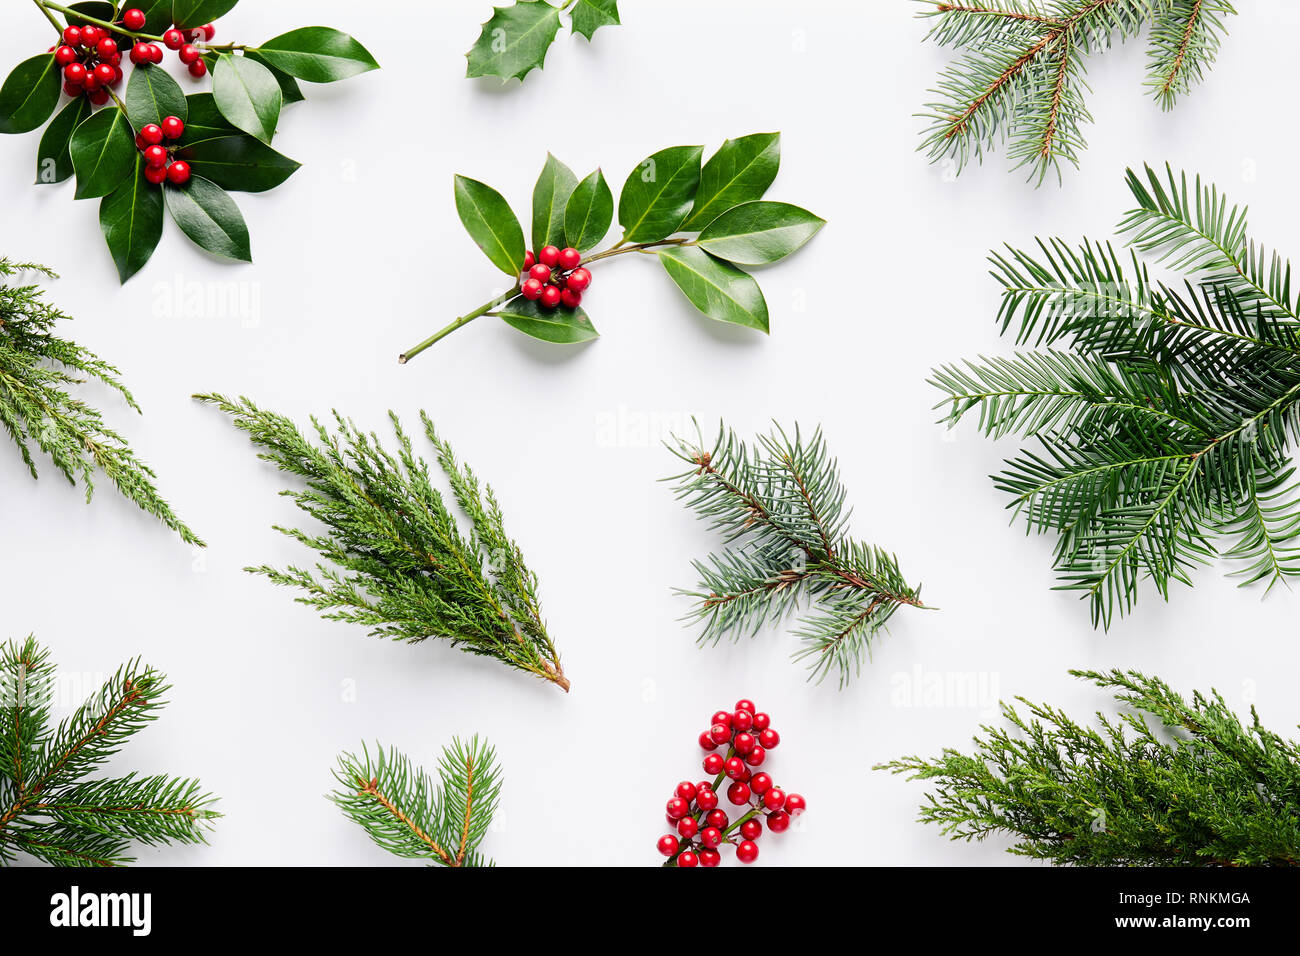 Collection Of Decorative Christmas Plants With Green Leaves And